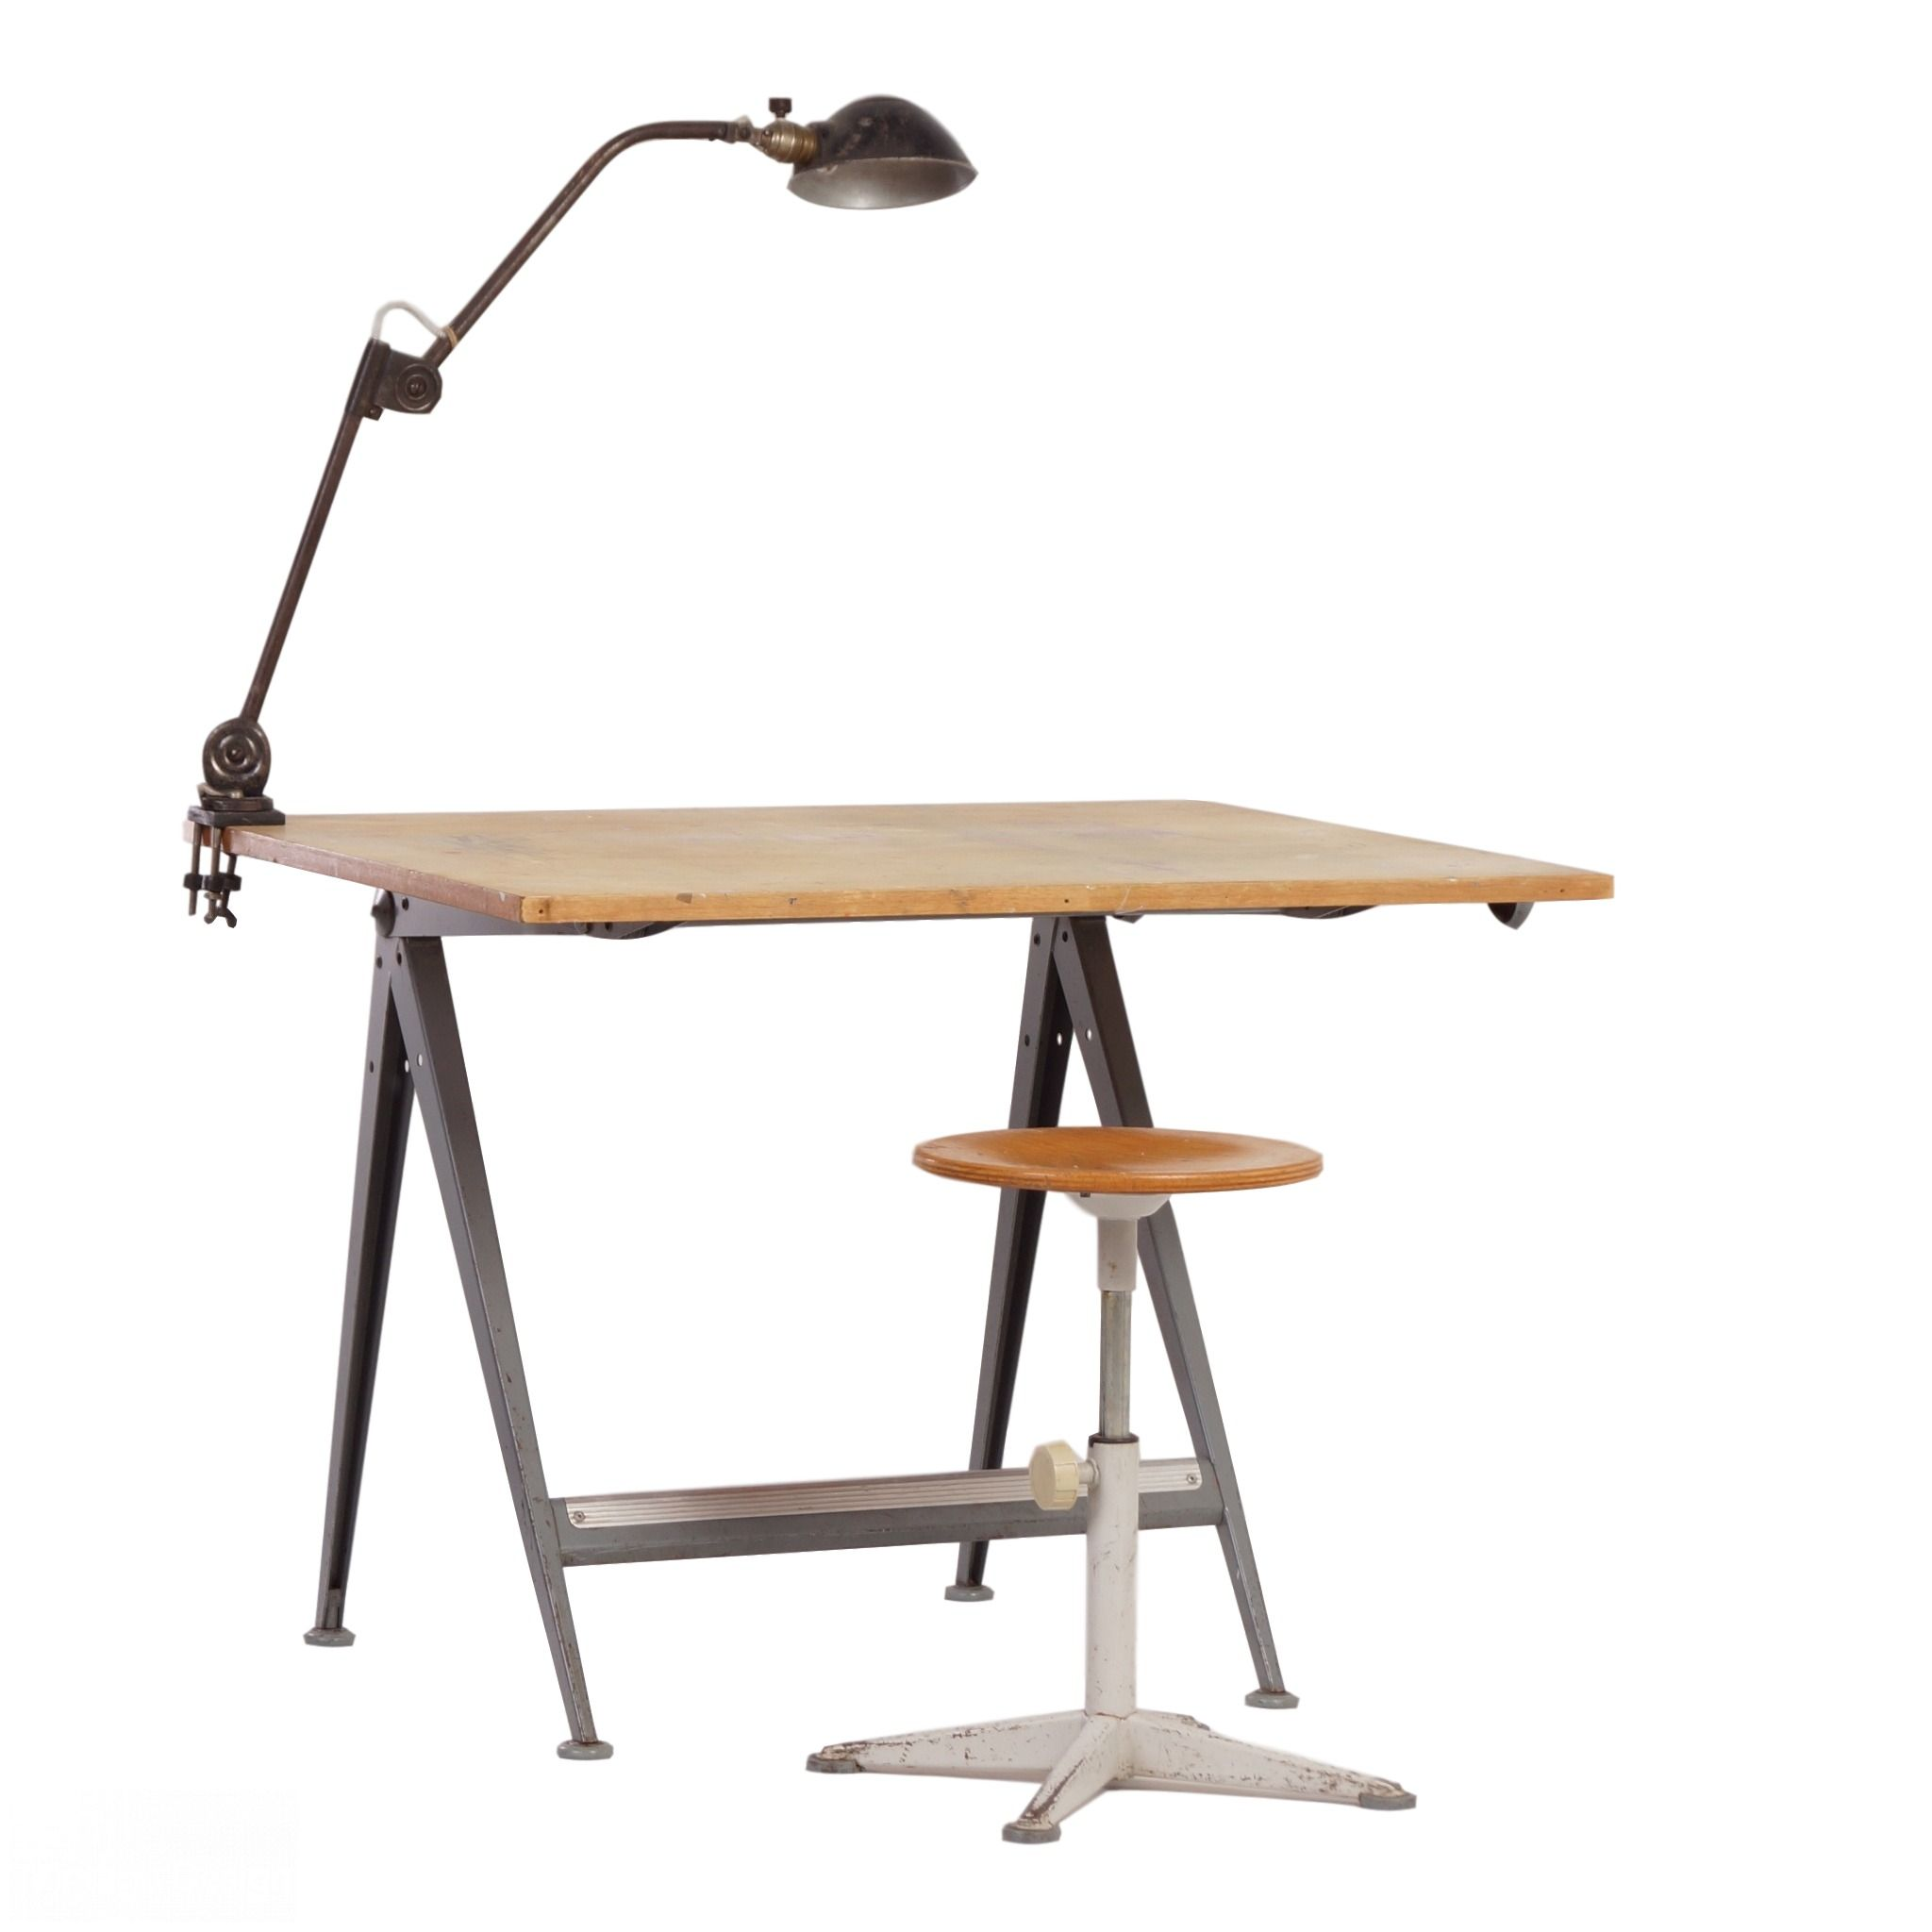 office products desk table best choice w rakuten shop stool bestchoiceproducts product drawing chair drafting adjustable station set